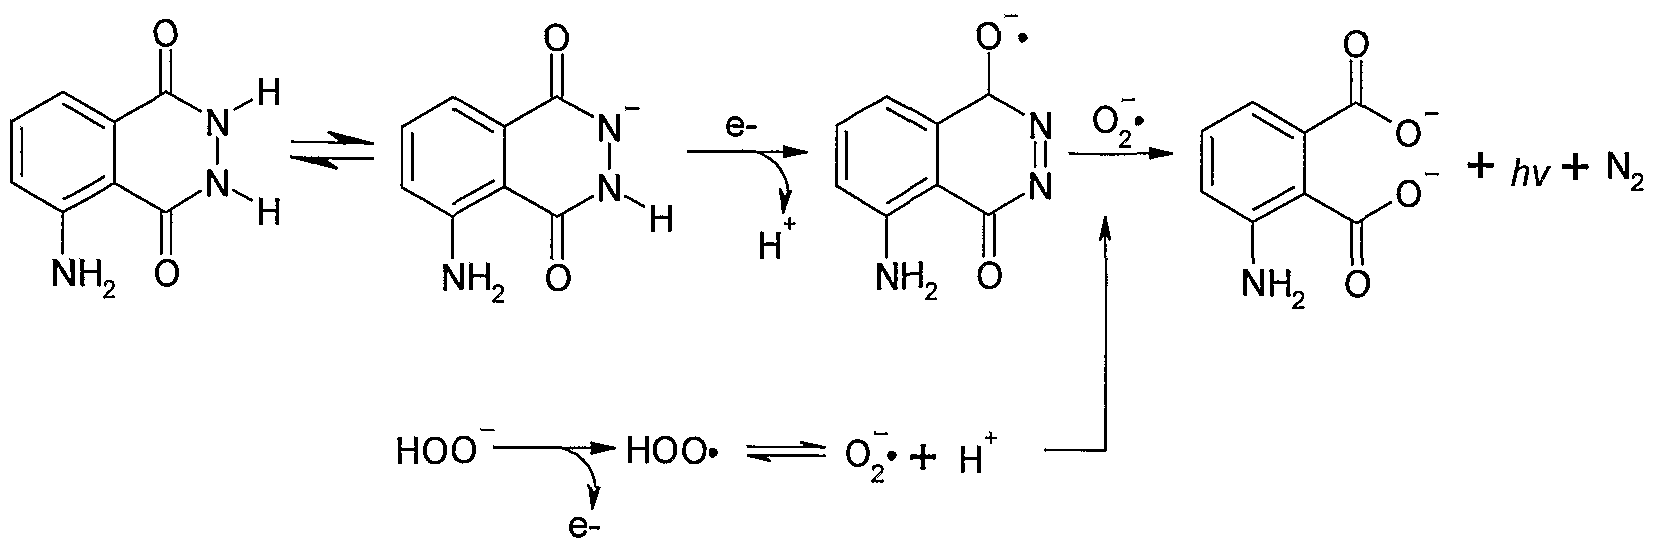 luminol synthesis 3-nitrophthalhydrazide, prepared in a previous video, is reduced with a readily available reducing agent (thiourea dioxide, tud) to luminol, which is.